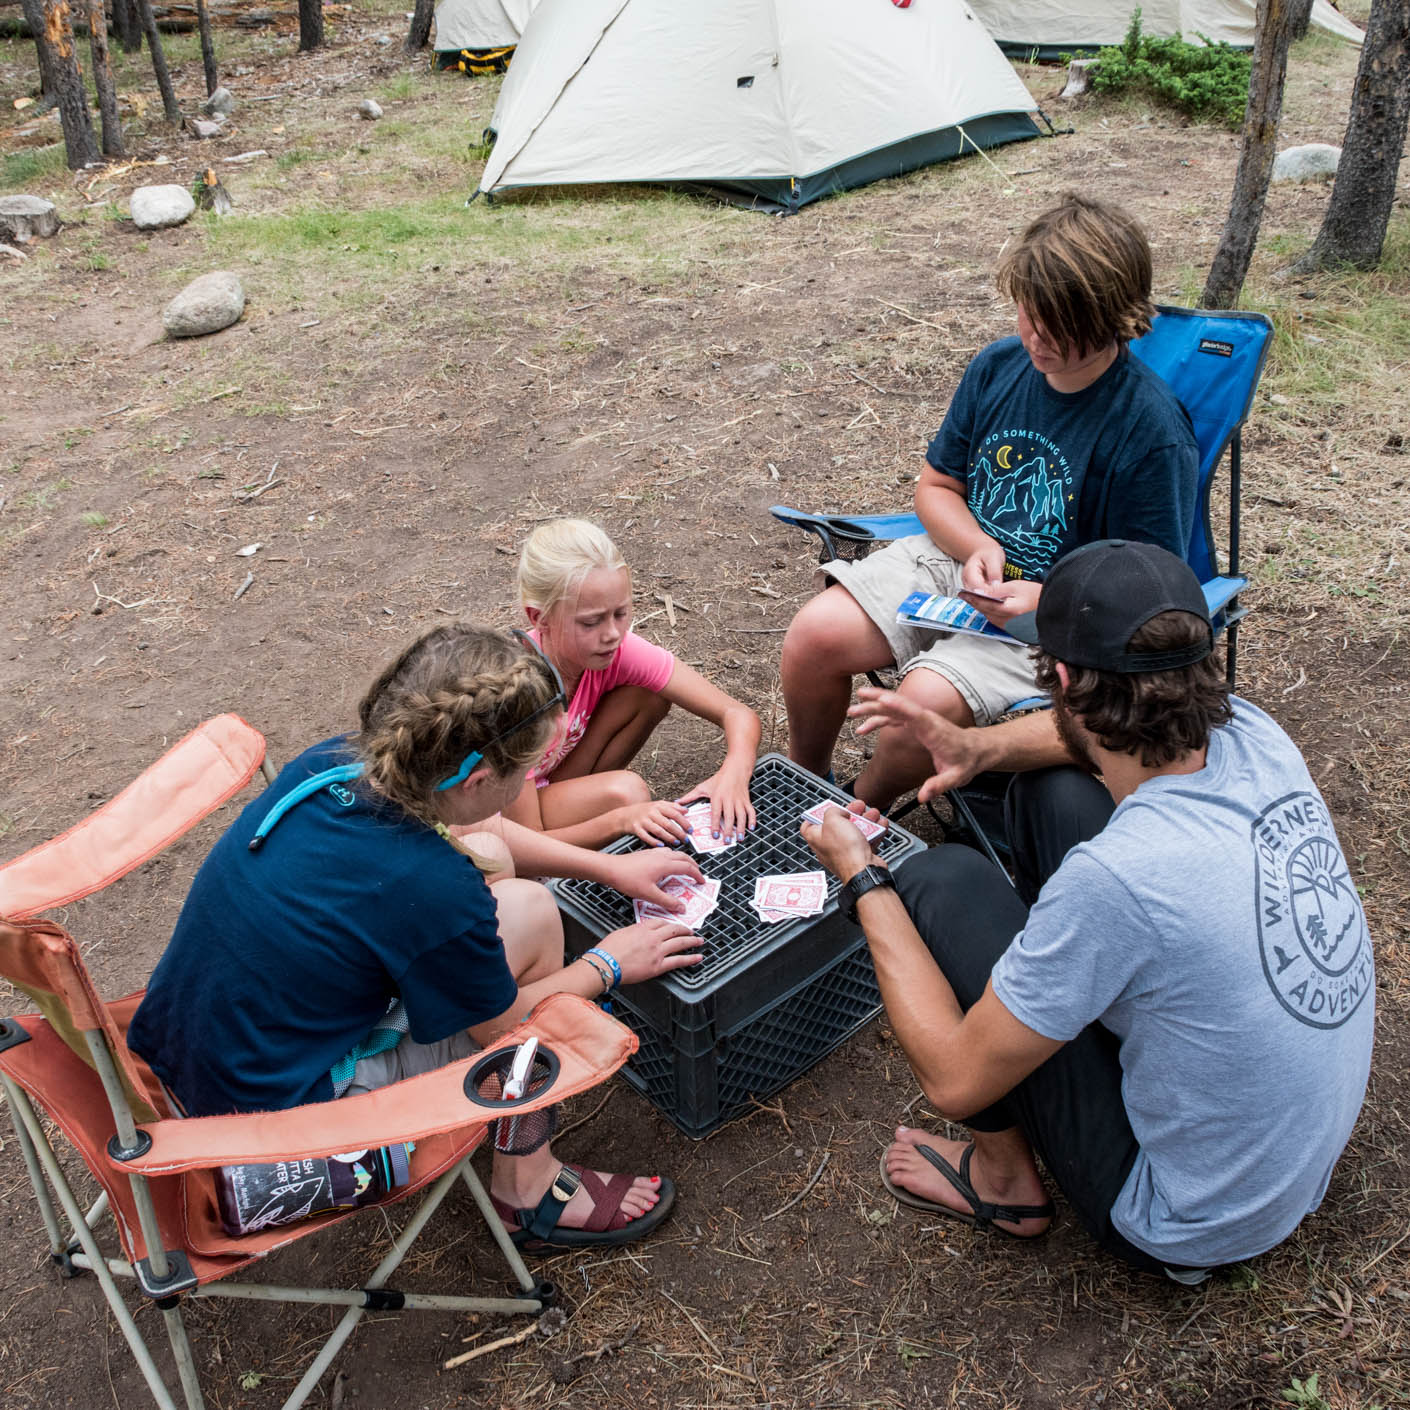 Travelers playing card games at a campsite